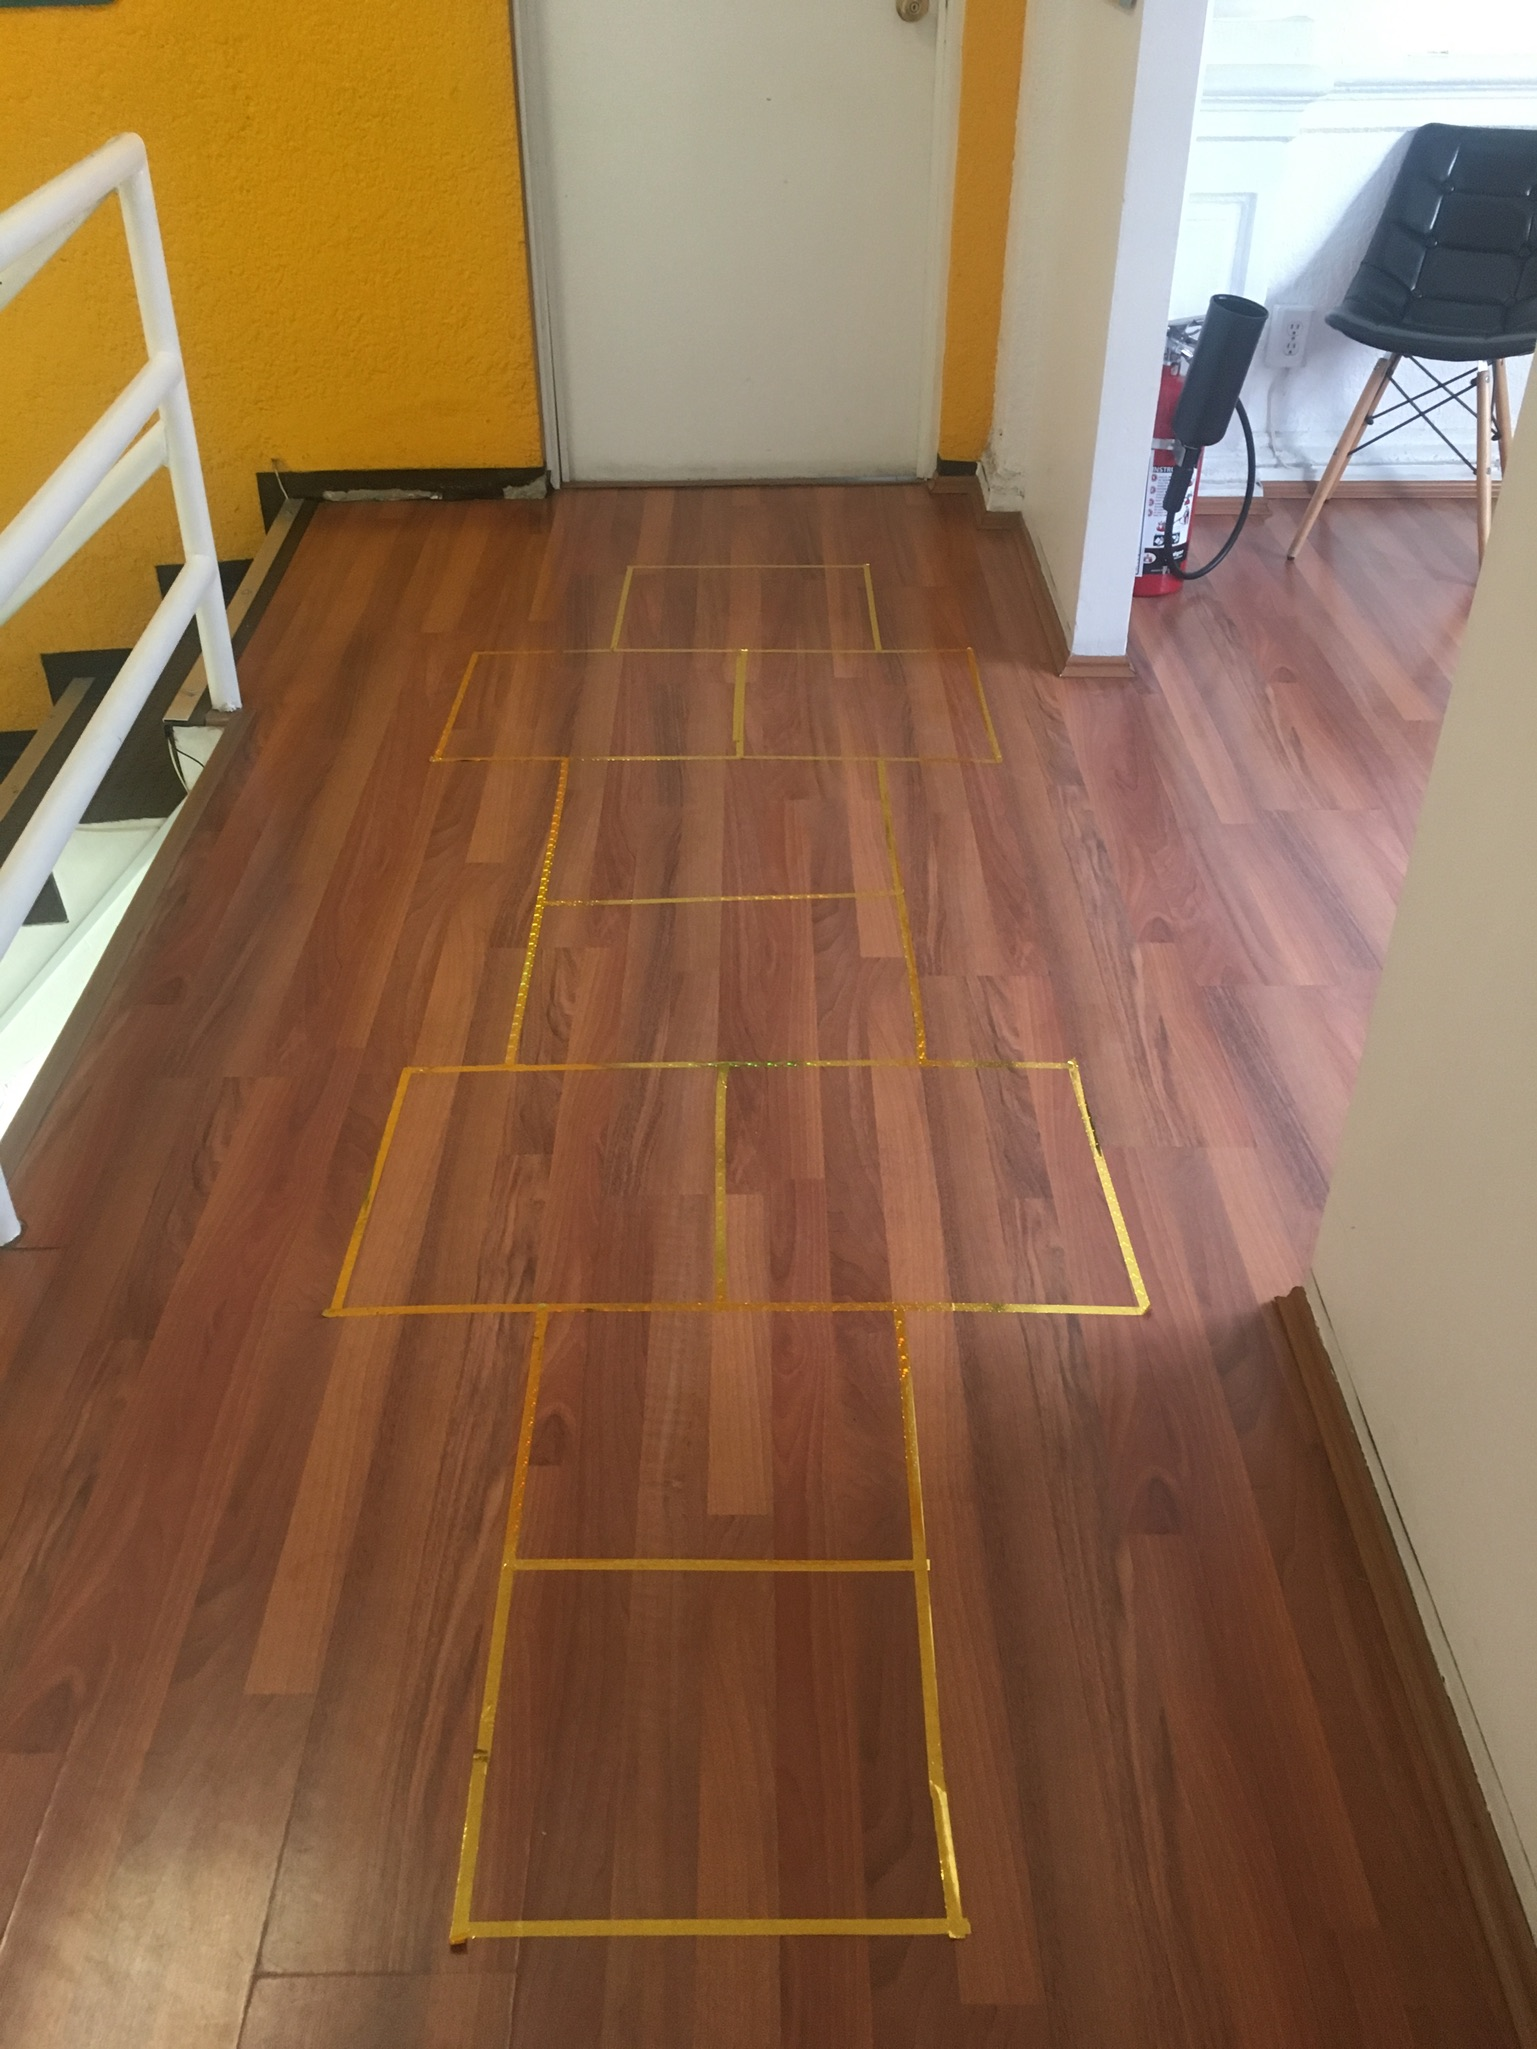 Hop Scotch to the conference room